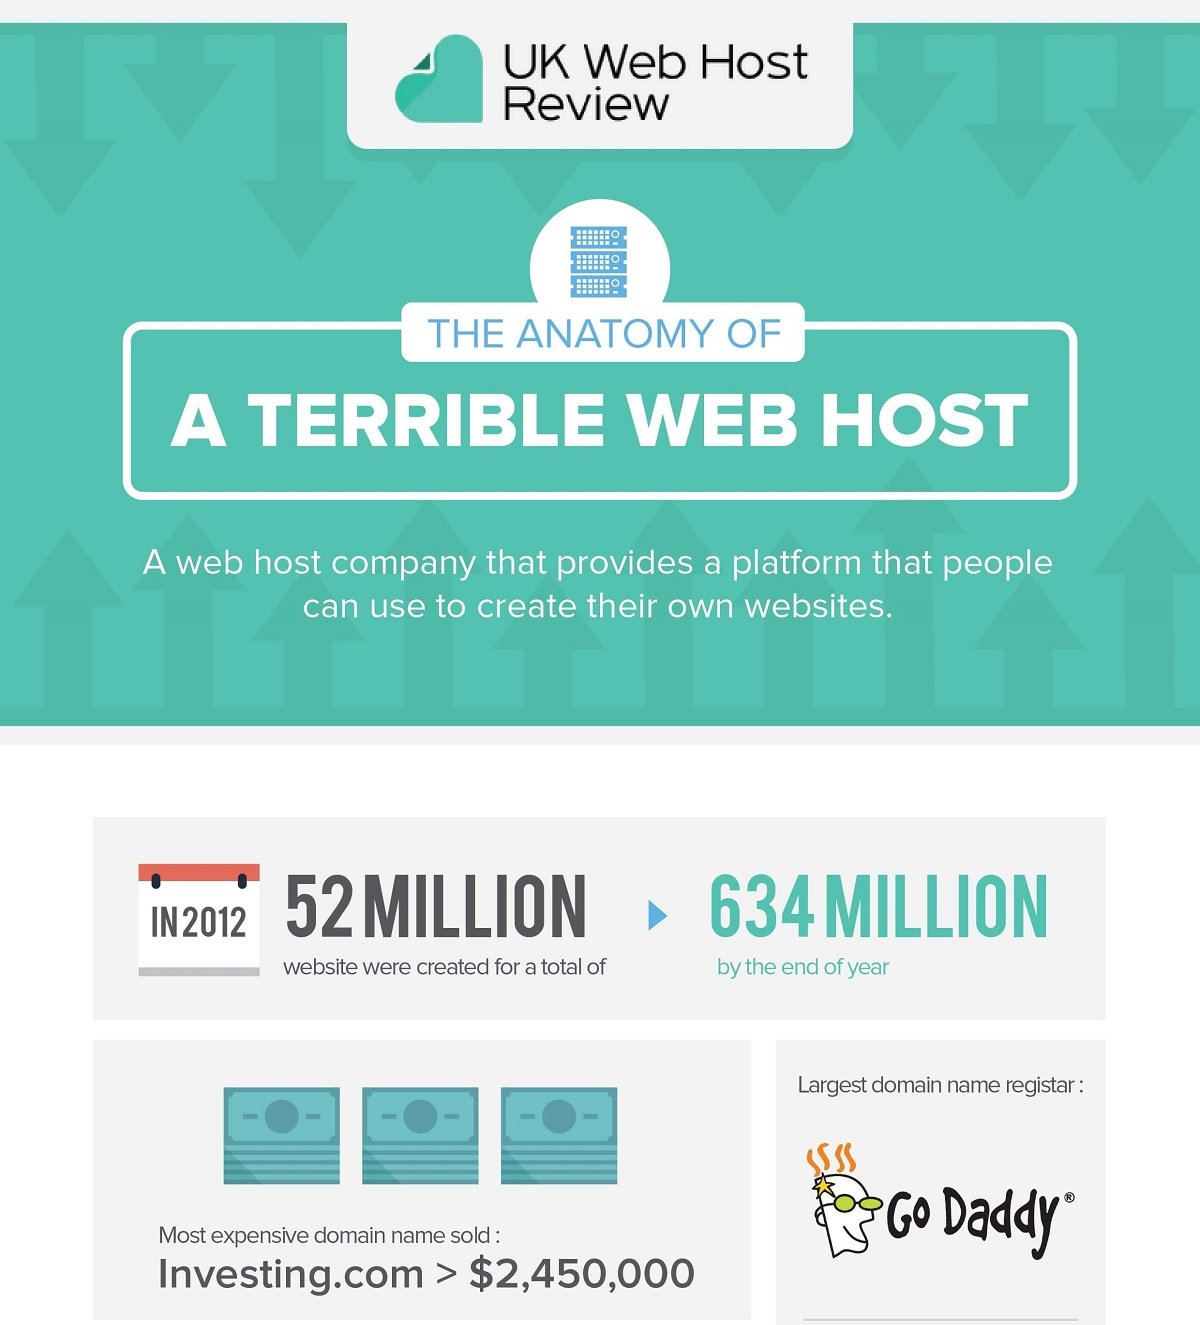 the-anatomy-of-terrible-web-host - 1000+ Infographics, Posters ...